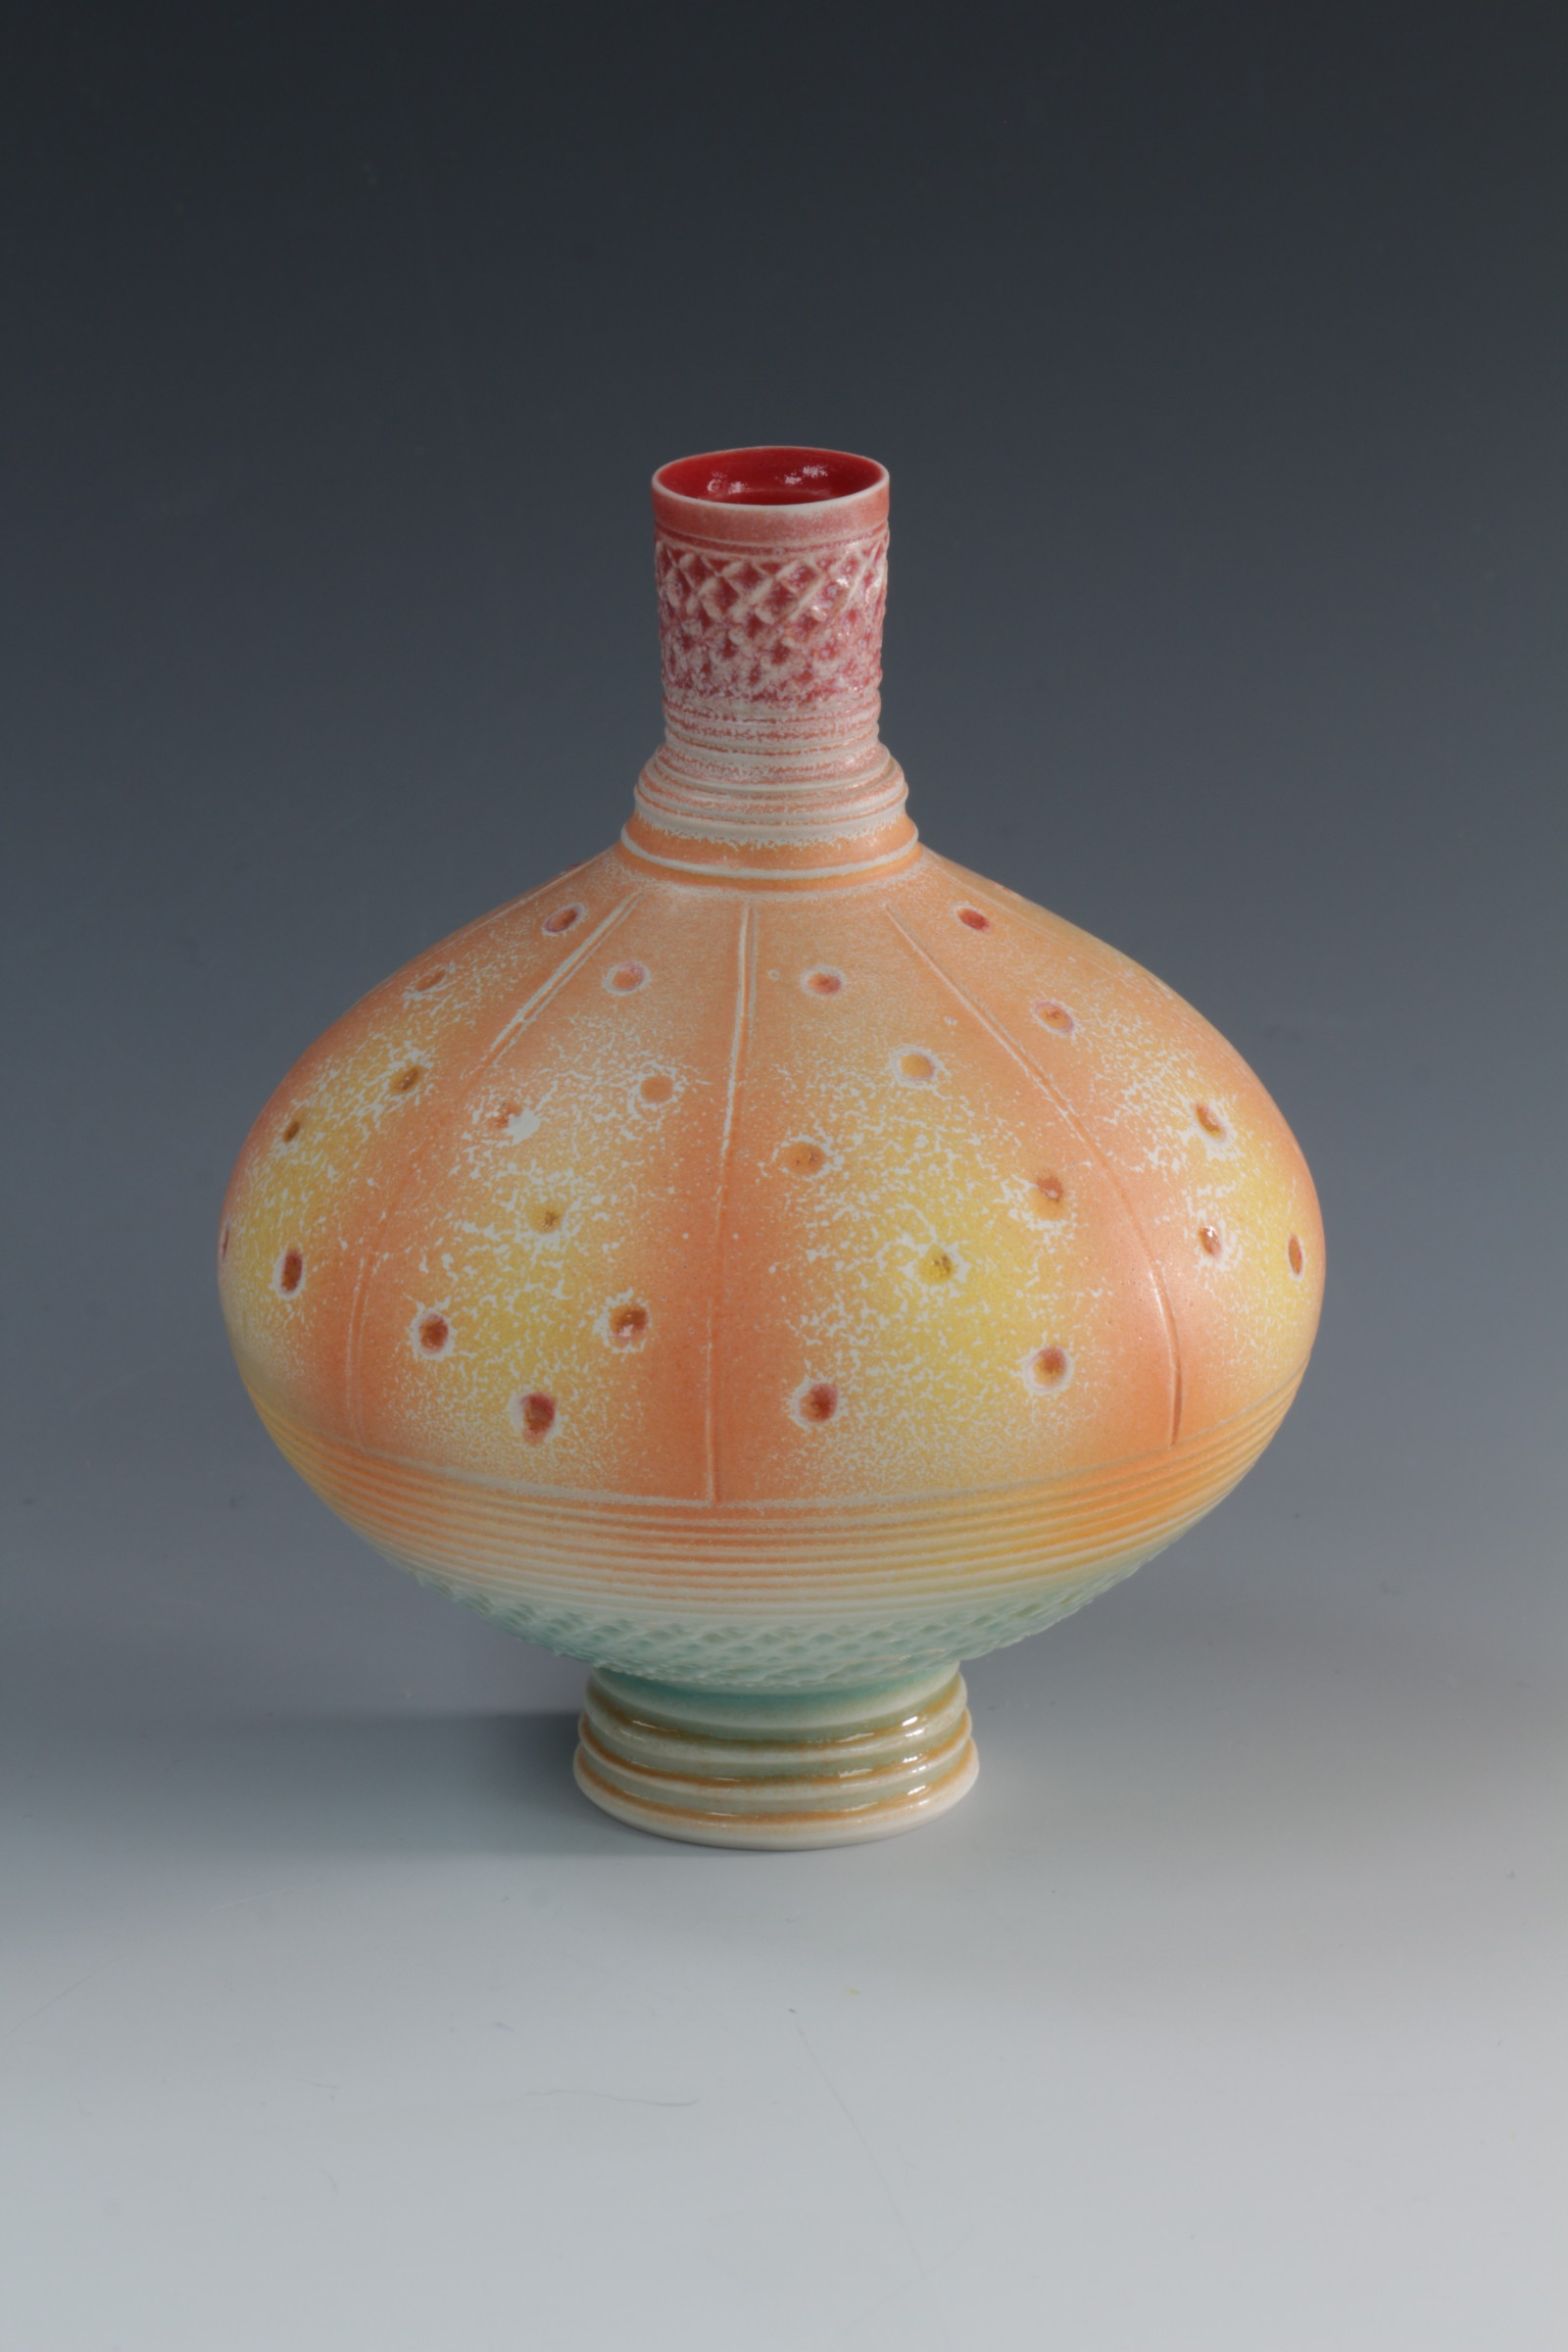 "<span class=""link fancybox-details-link""><a href=""/artists/61-geoffrey-swindell/works/6901-geoffrey-swindell-bud-vase-2020/"">View Detail Page</a></span><div class=""artist""><strong>Geoffrey Swindell</strong></div> b. 1945 <div class=""title""><em>Bud Vase</em>, 2020</div> <div class=""signed_and_dated"">impressed artist's seal to base</div> <div class=""medium"">porcelain</div><div class=""copyright_line"">Own Art: £ 17 x 10 Months, 0% APR</div>"